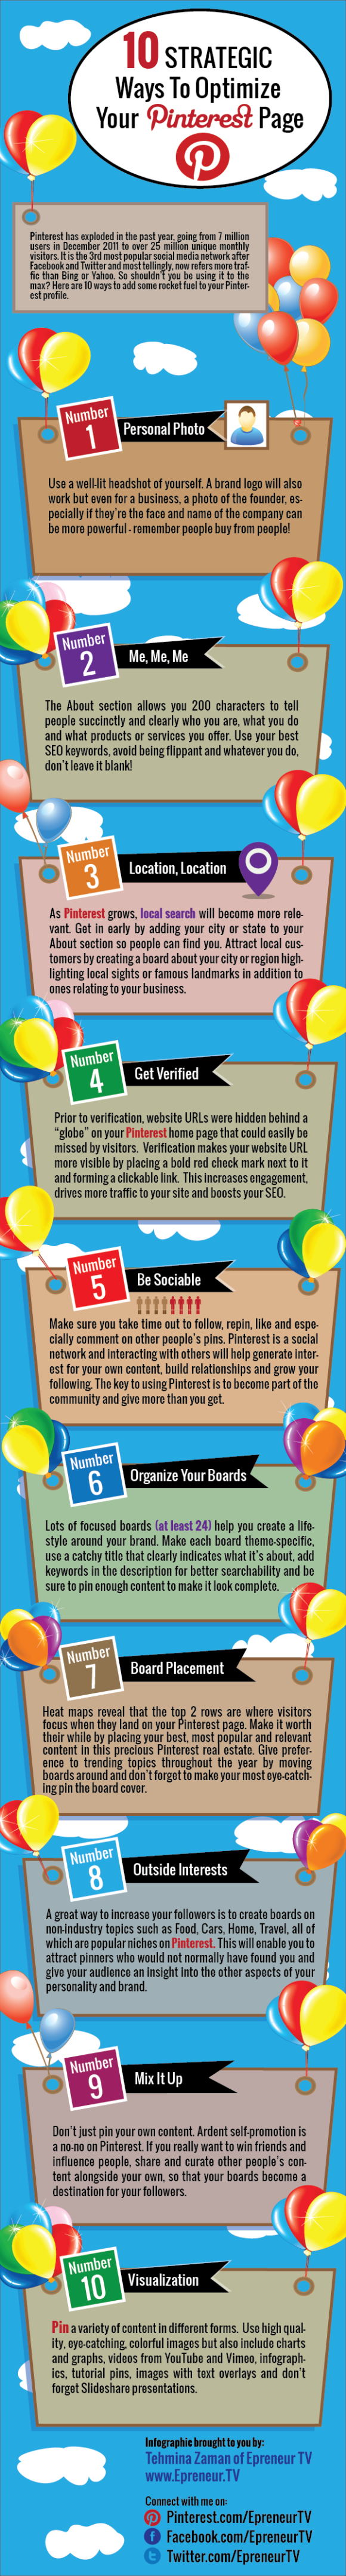 10-Ways-To-Optimize-Your-Pinterest-Profile